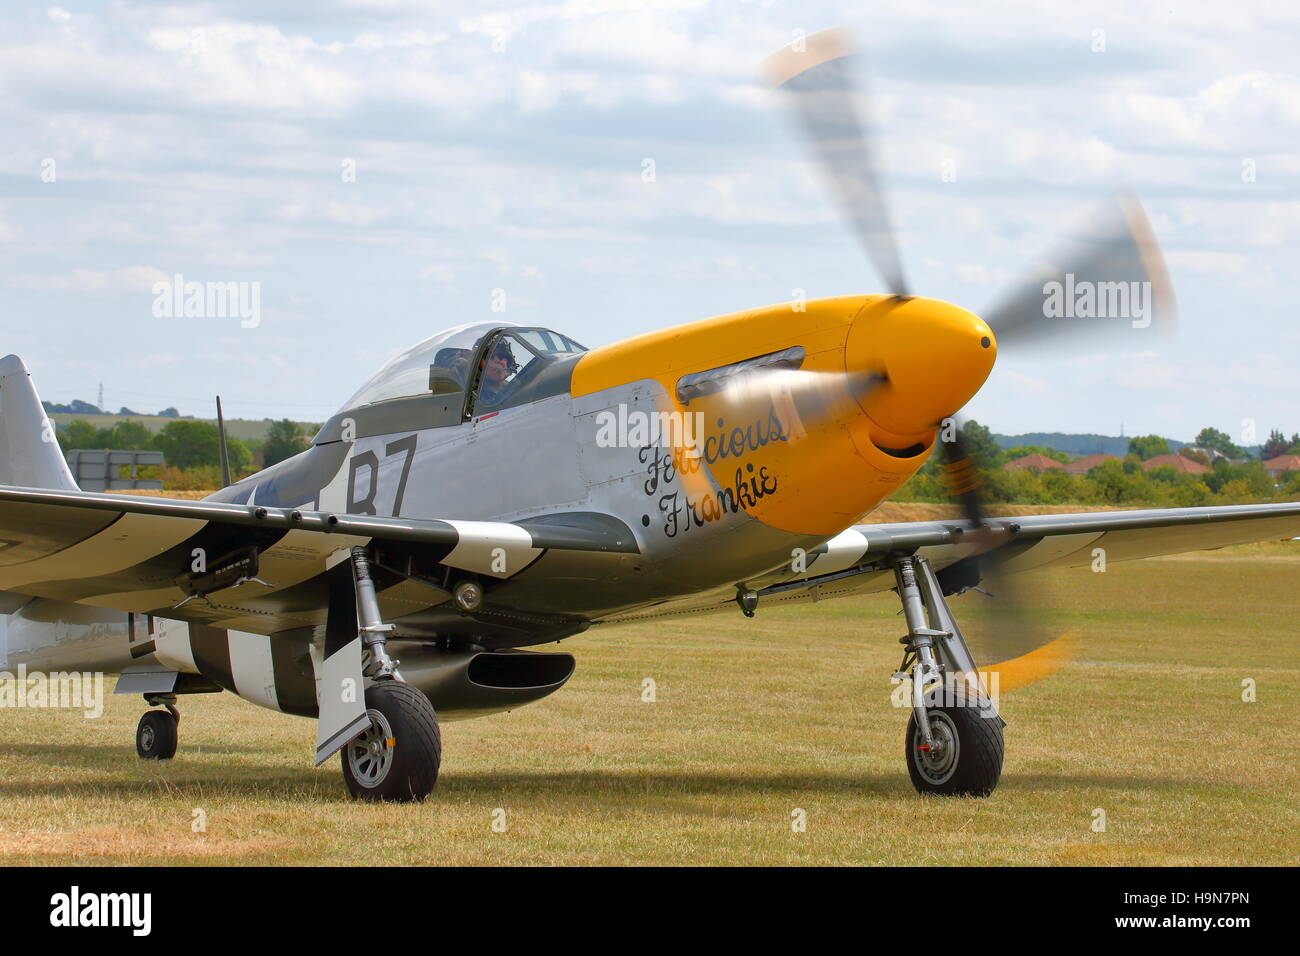 North-American Mustang P51D Ferocious Frankie G-BTCD at Duxford Air Show, England, UK Stock Photo